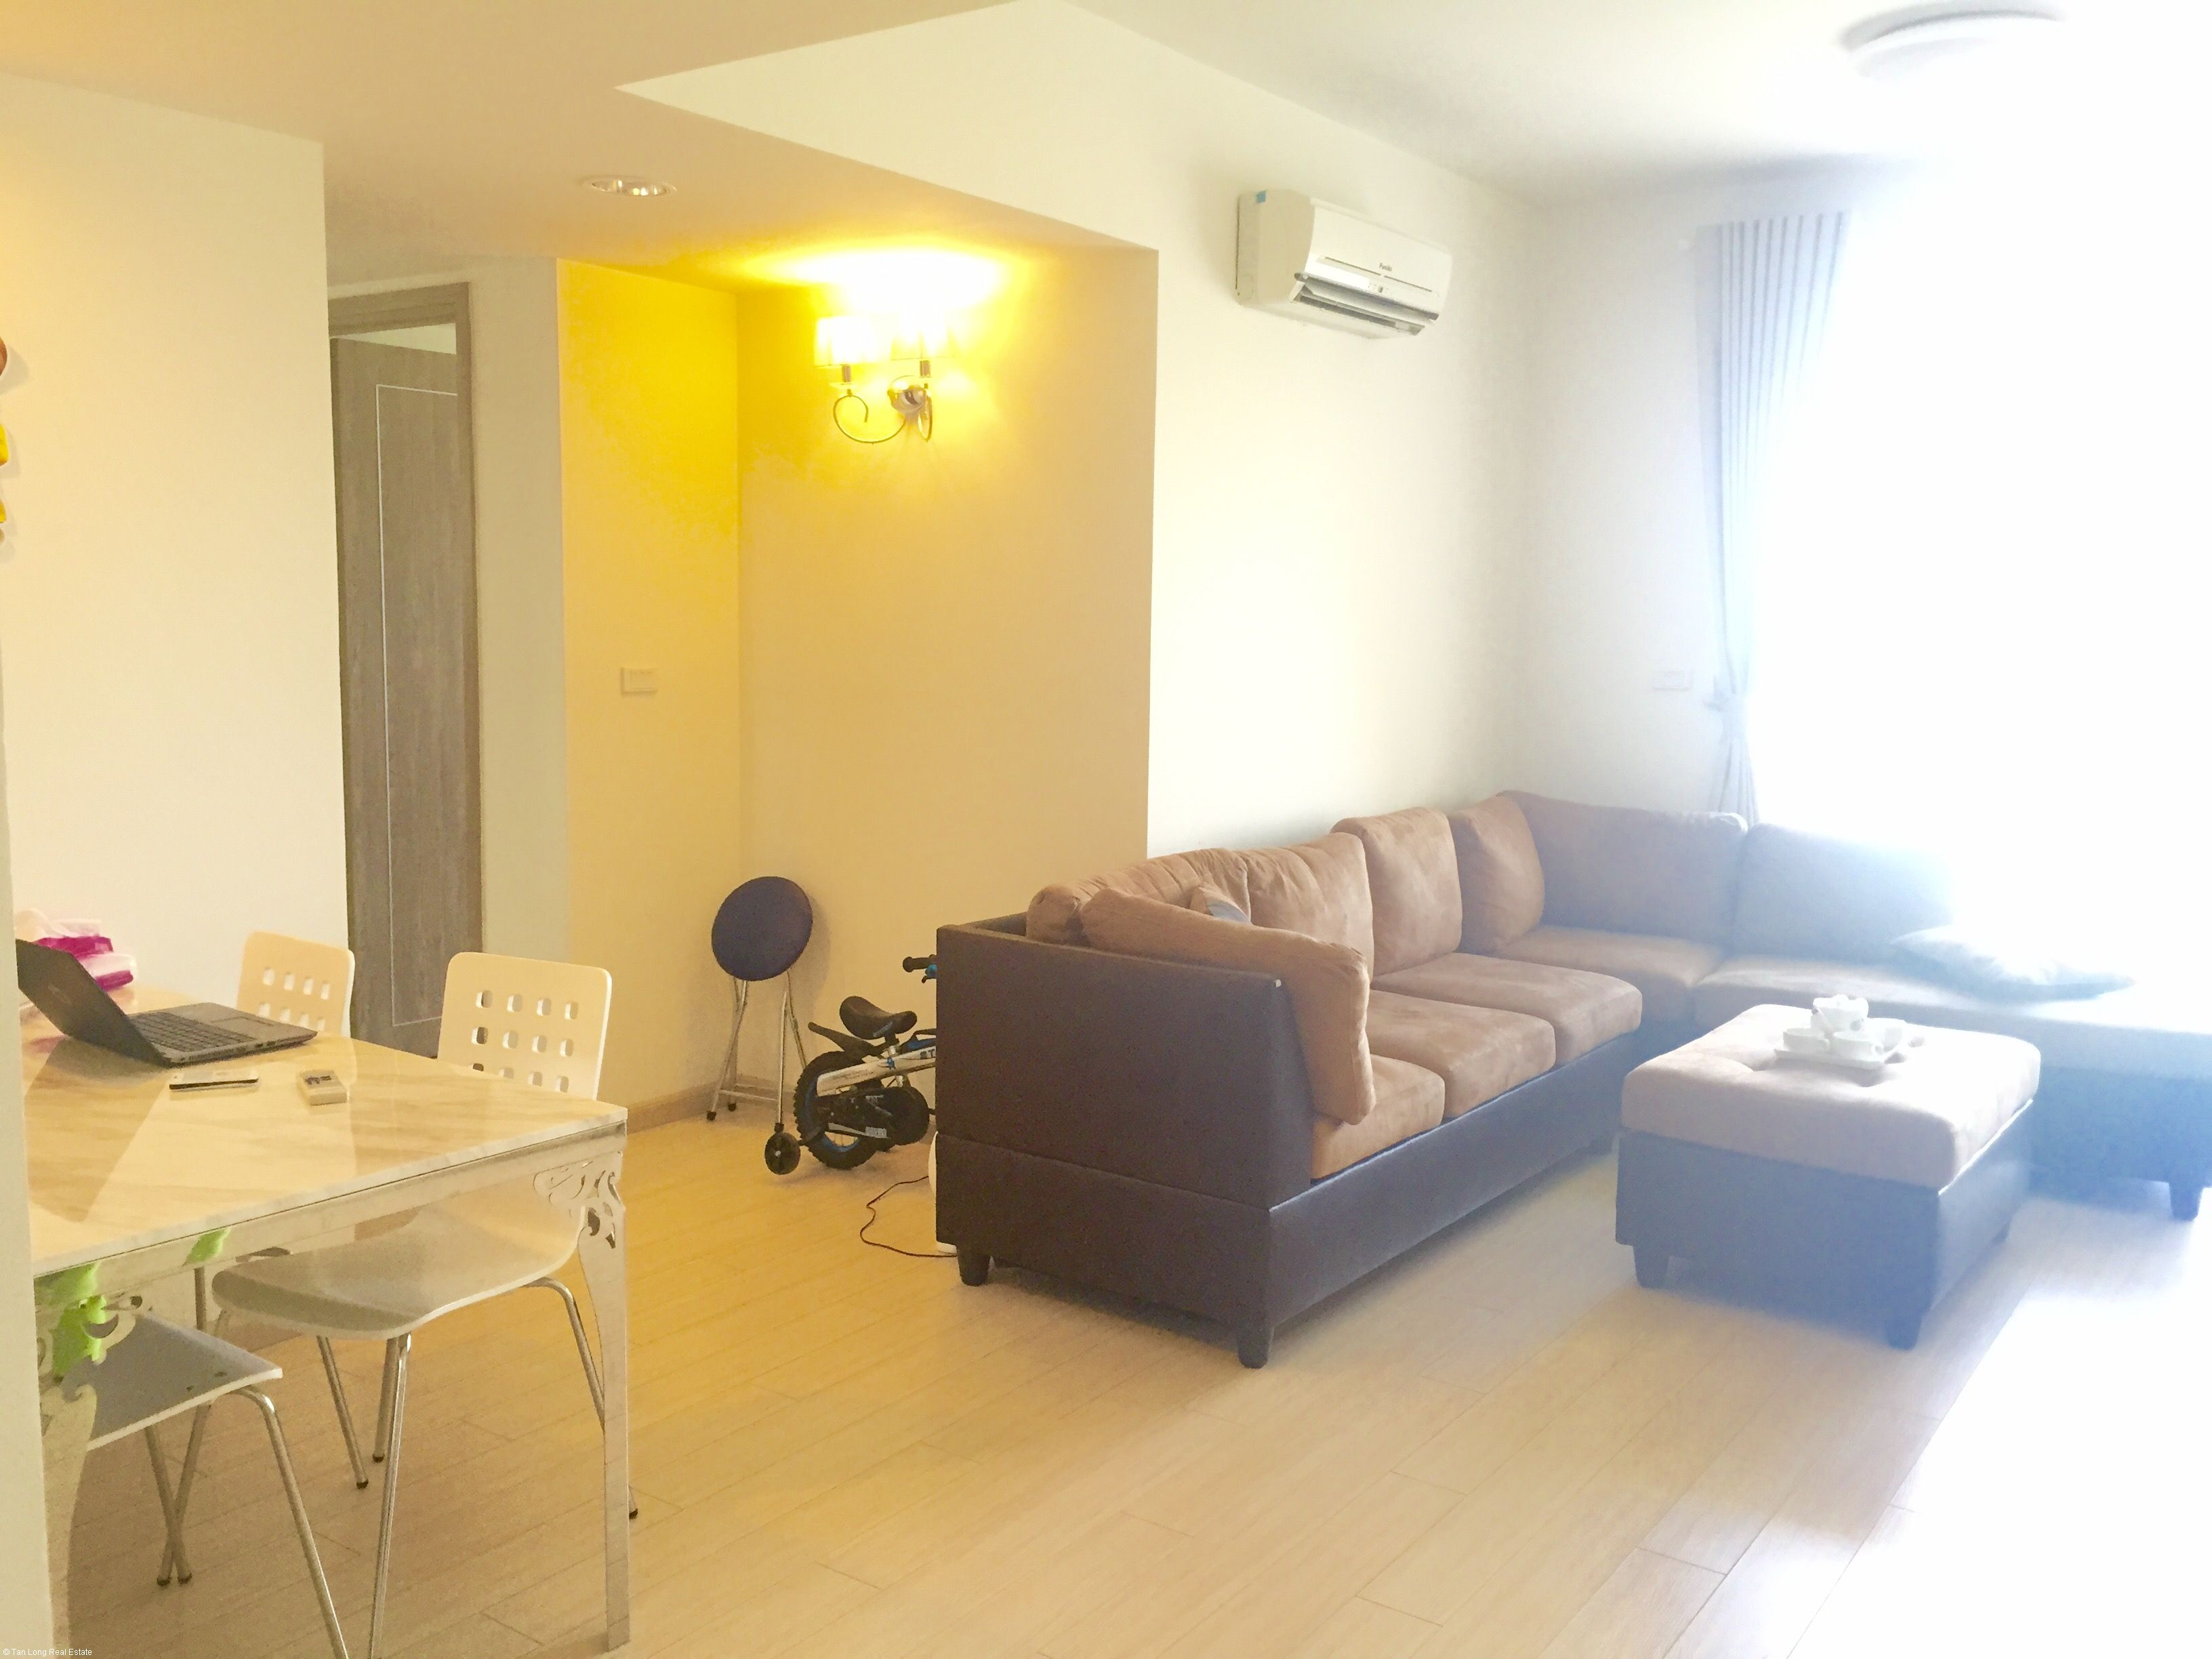 Modern apartment for rent in green urban area of Hanoi city – Ecopark.